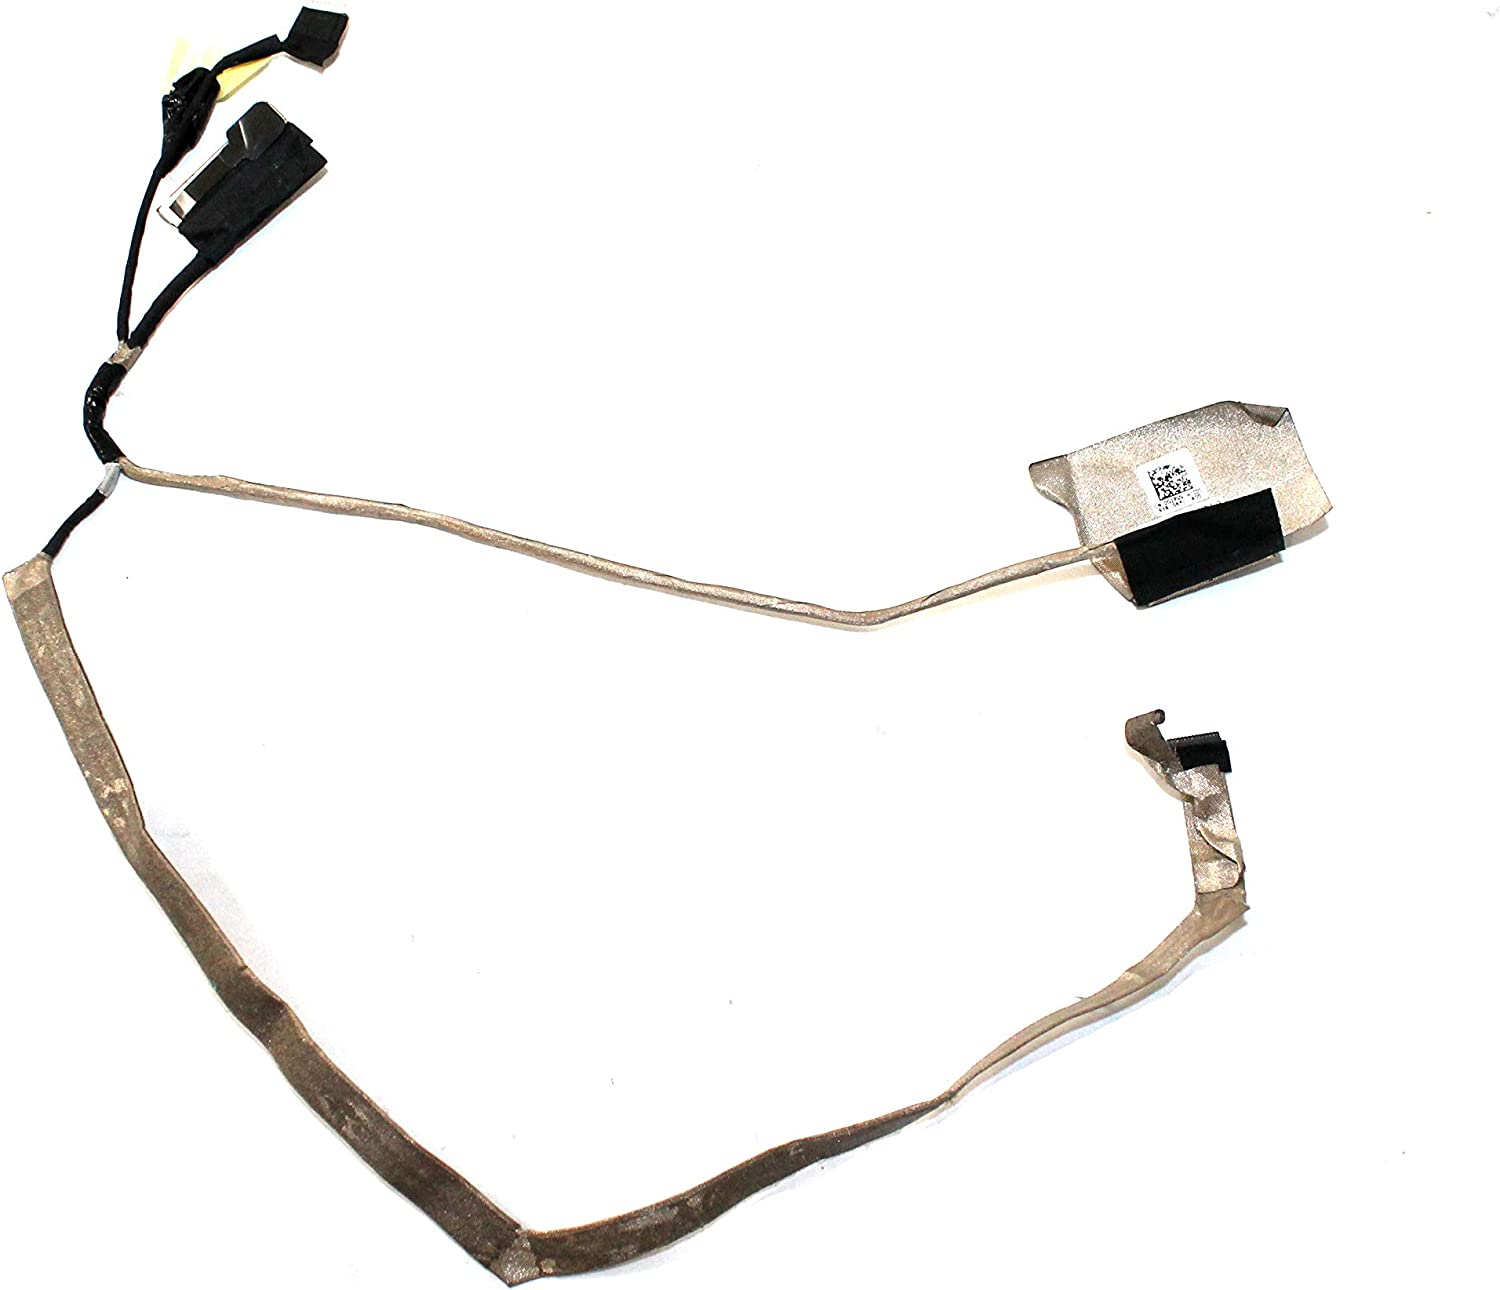 G1PVV Dell Precision 3540 3541 Latitude 5500 Genuine OEM LCD Cable